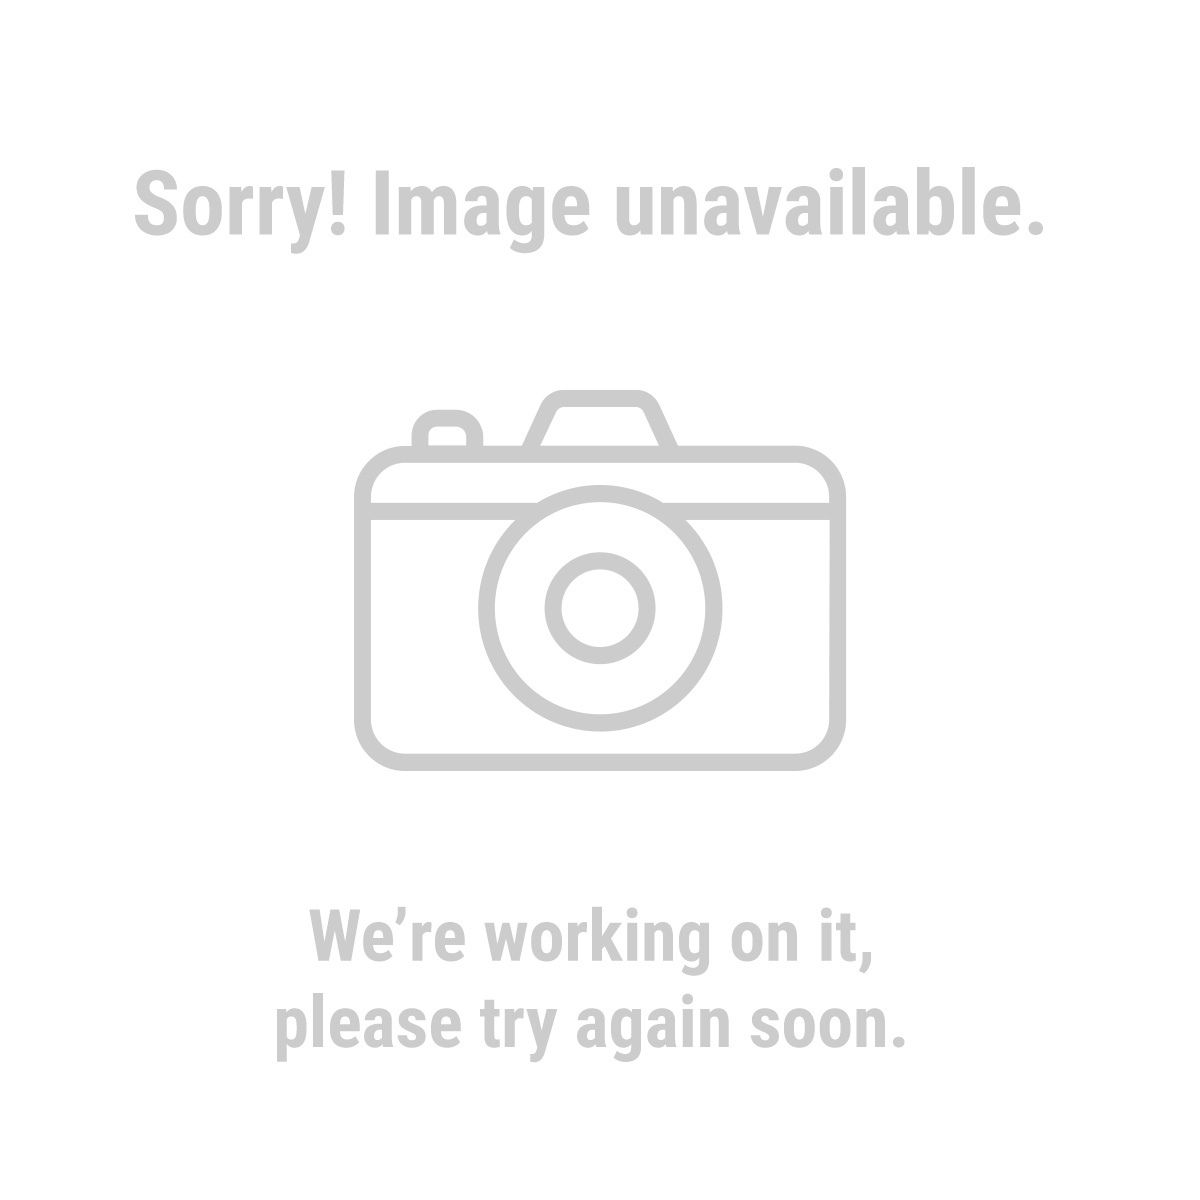 ShelterLogic 68777 15 ft x 28 ft Peak Top Portable Shelter